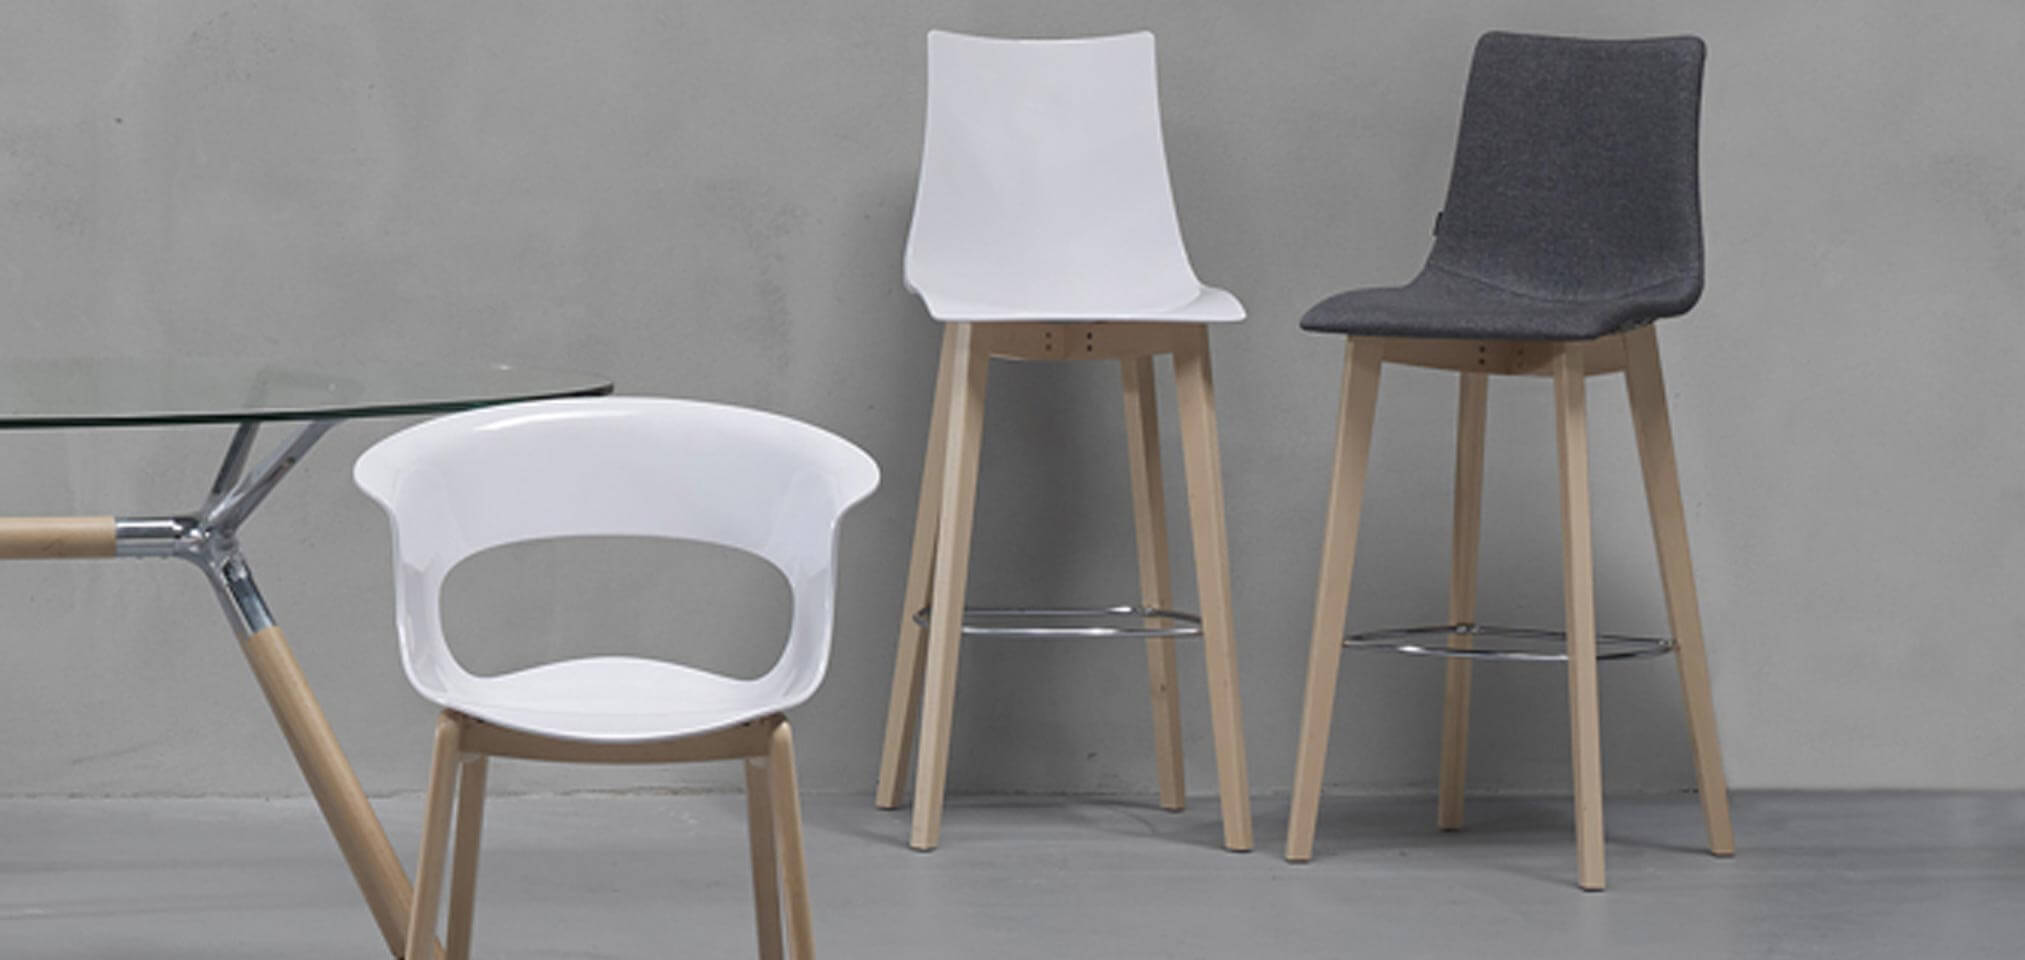 restaurant supply chairs karma living butterfly chair creative furniture design cafe